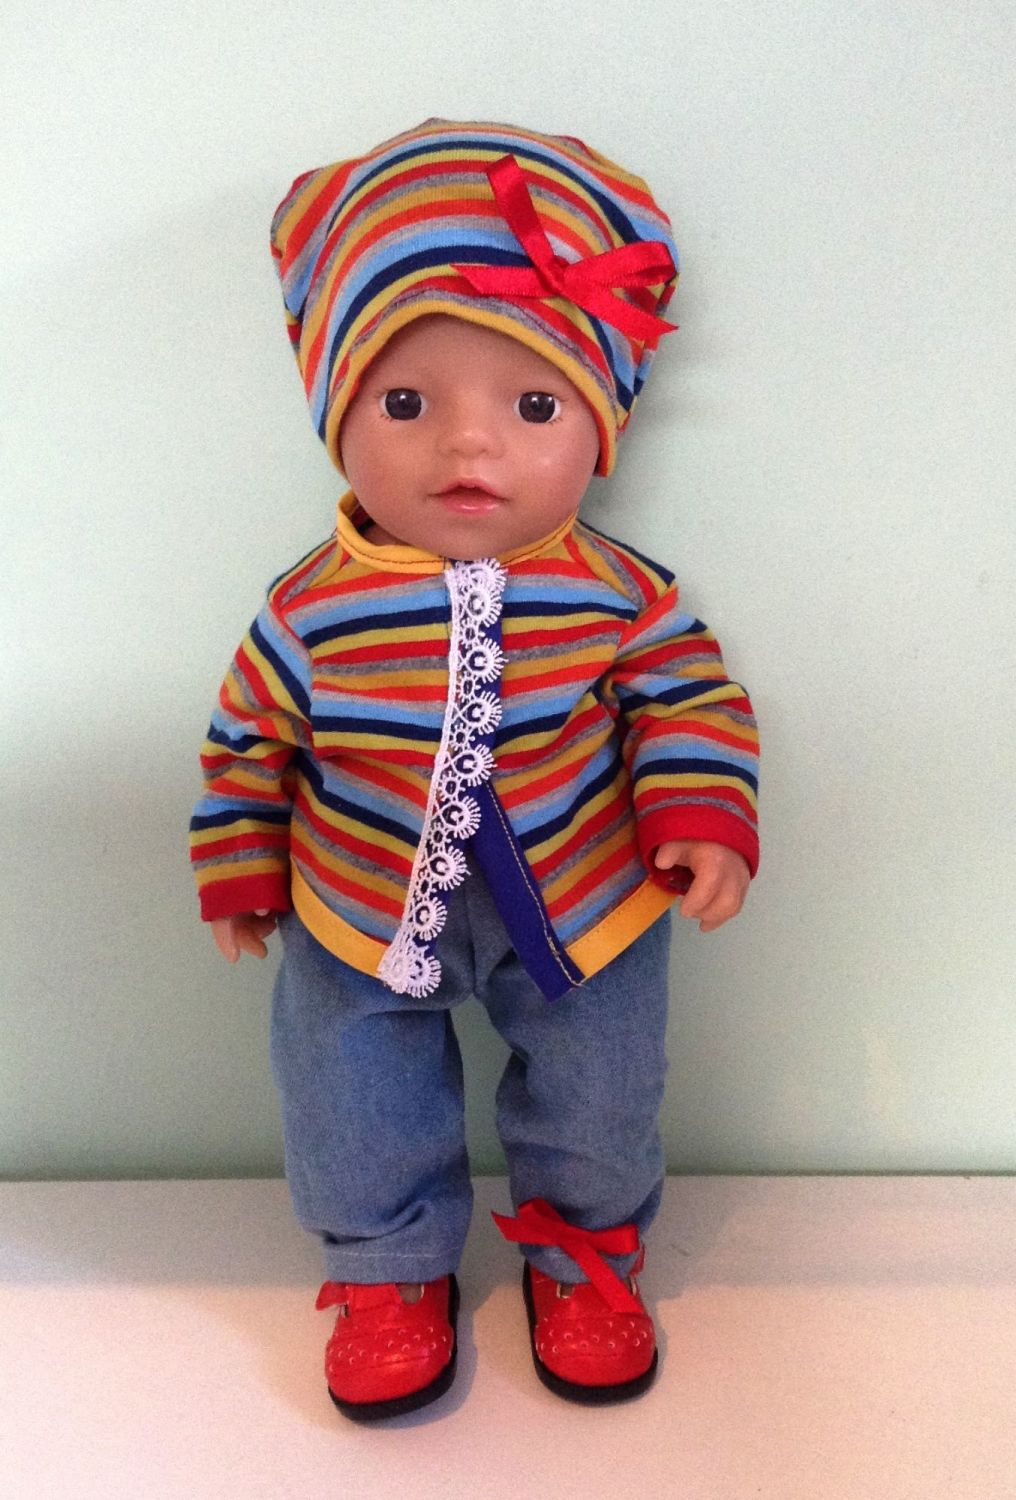 Doll's Jacket, jeans and beanie hat made to fit a 12 inch high baby girl do